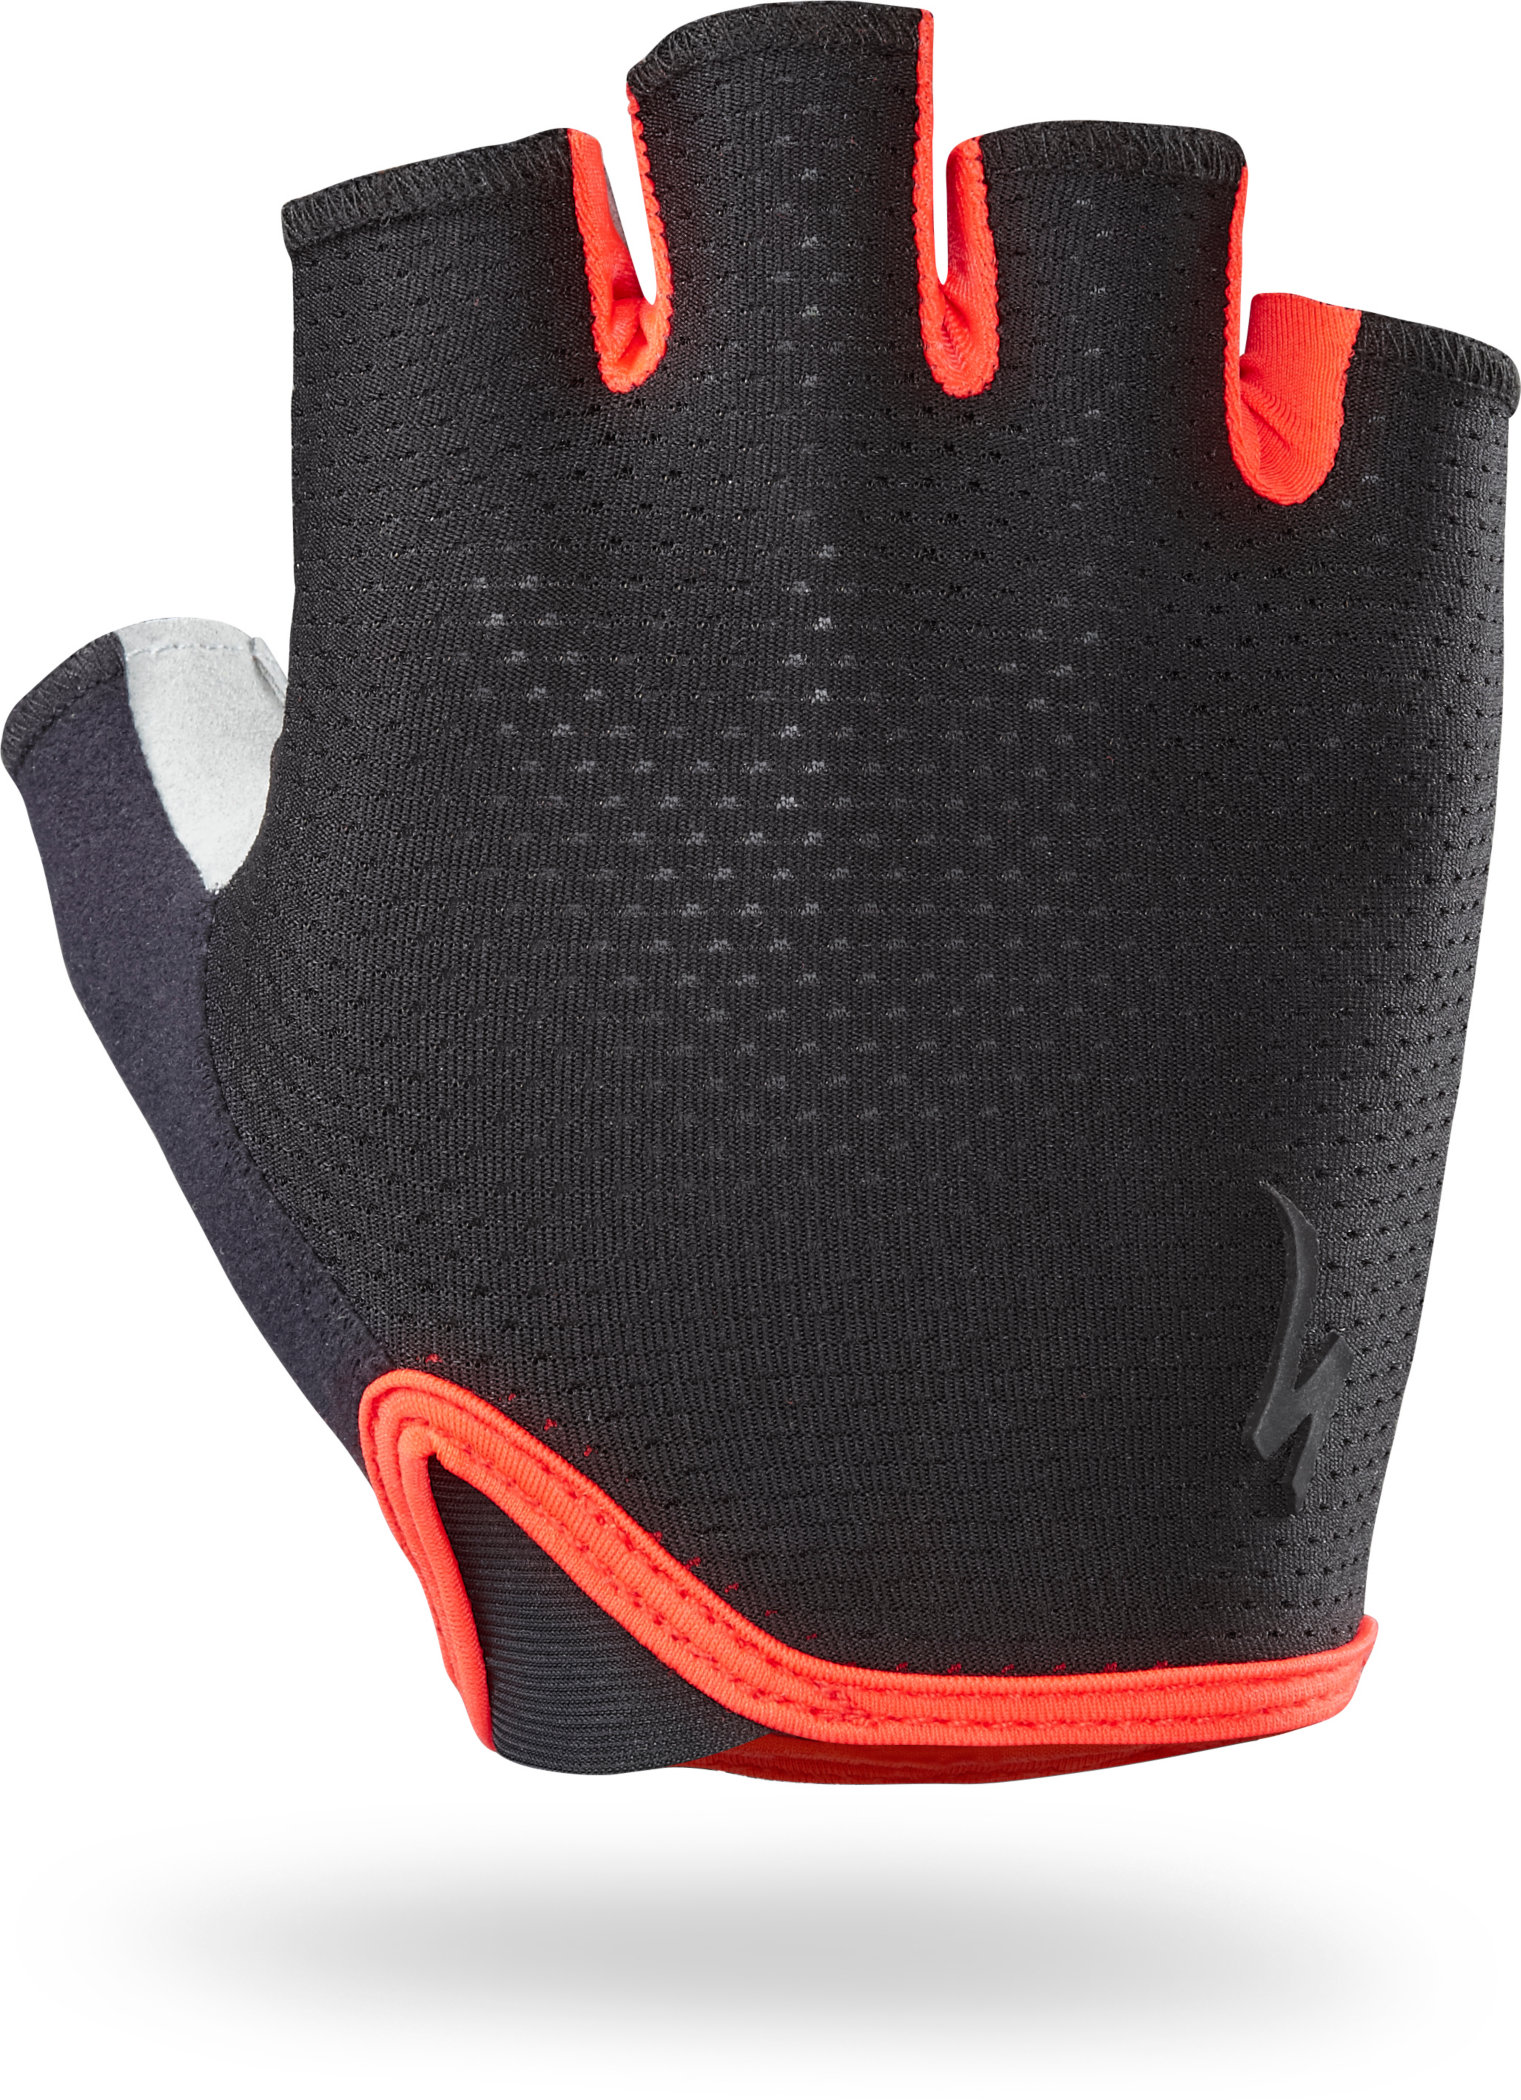 SPECIALIZED BG GRAIL GLOVE SF BLK/RKTRED L - Alpha Bikes